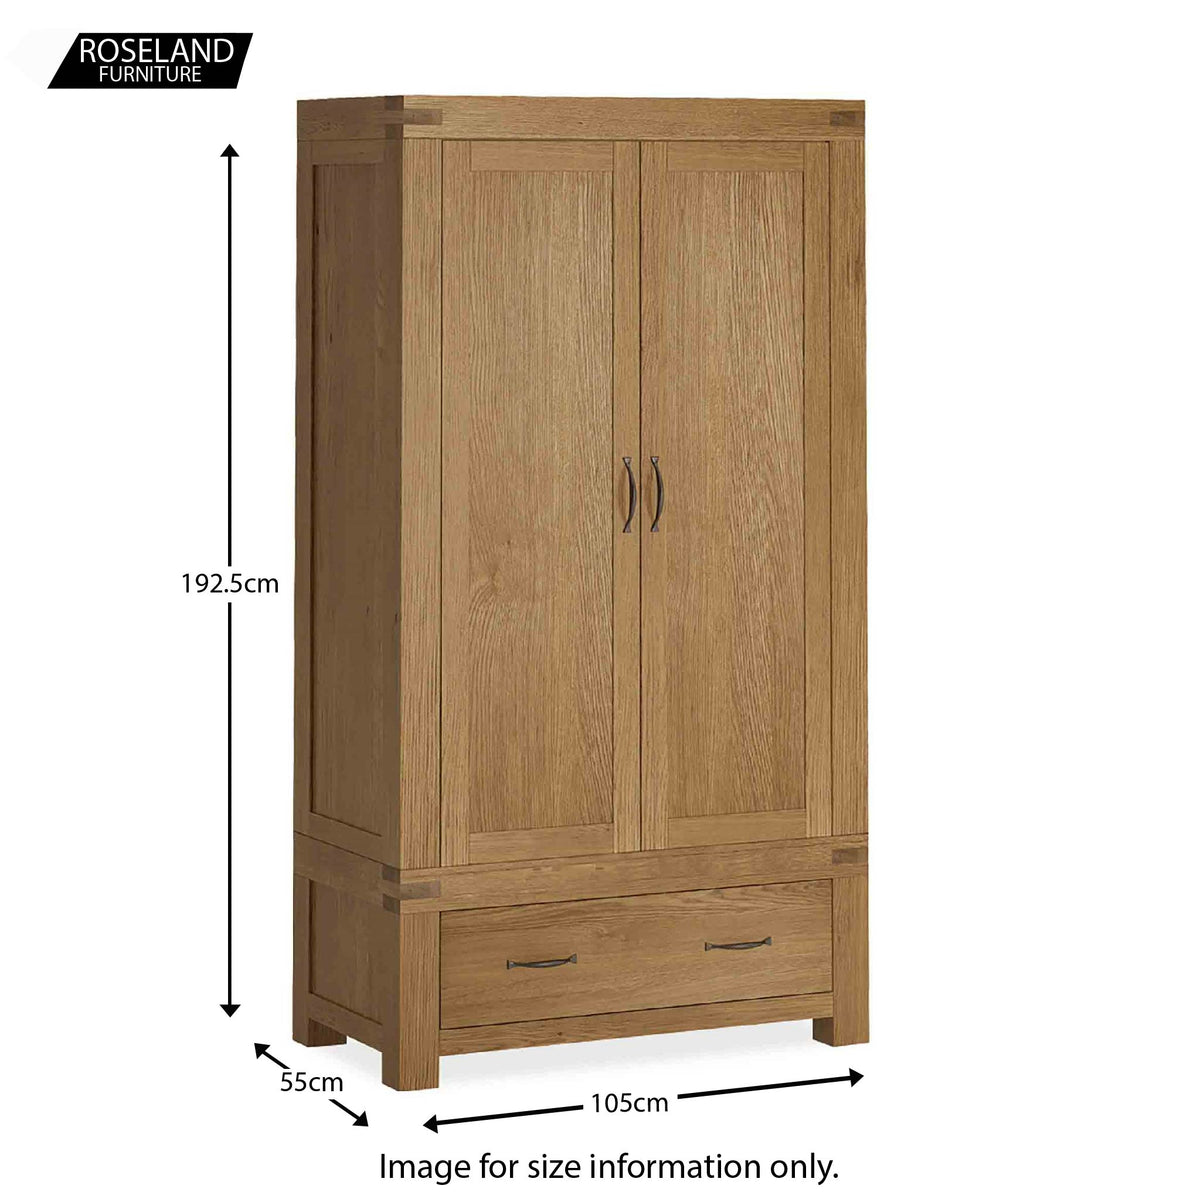 Abbey Grande Oak Double Wardrobe with Drawer - Size guide